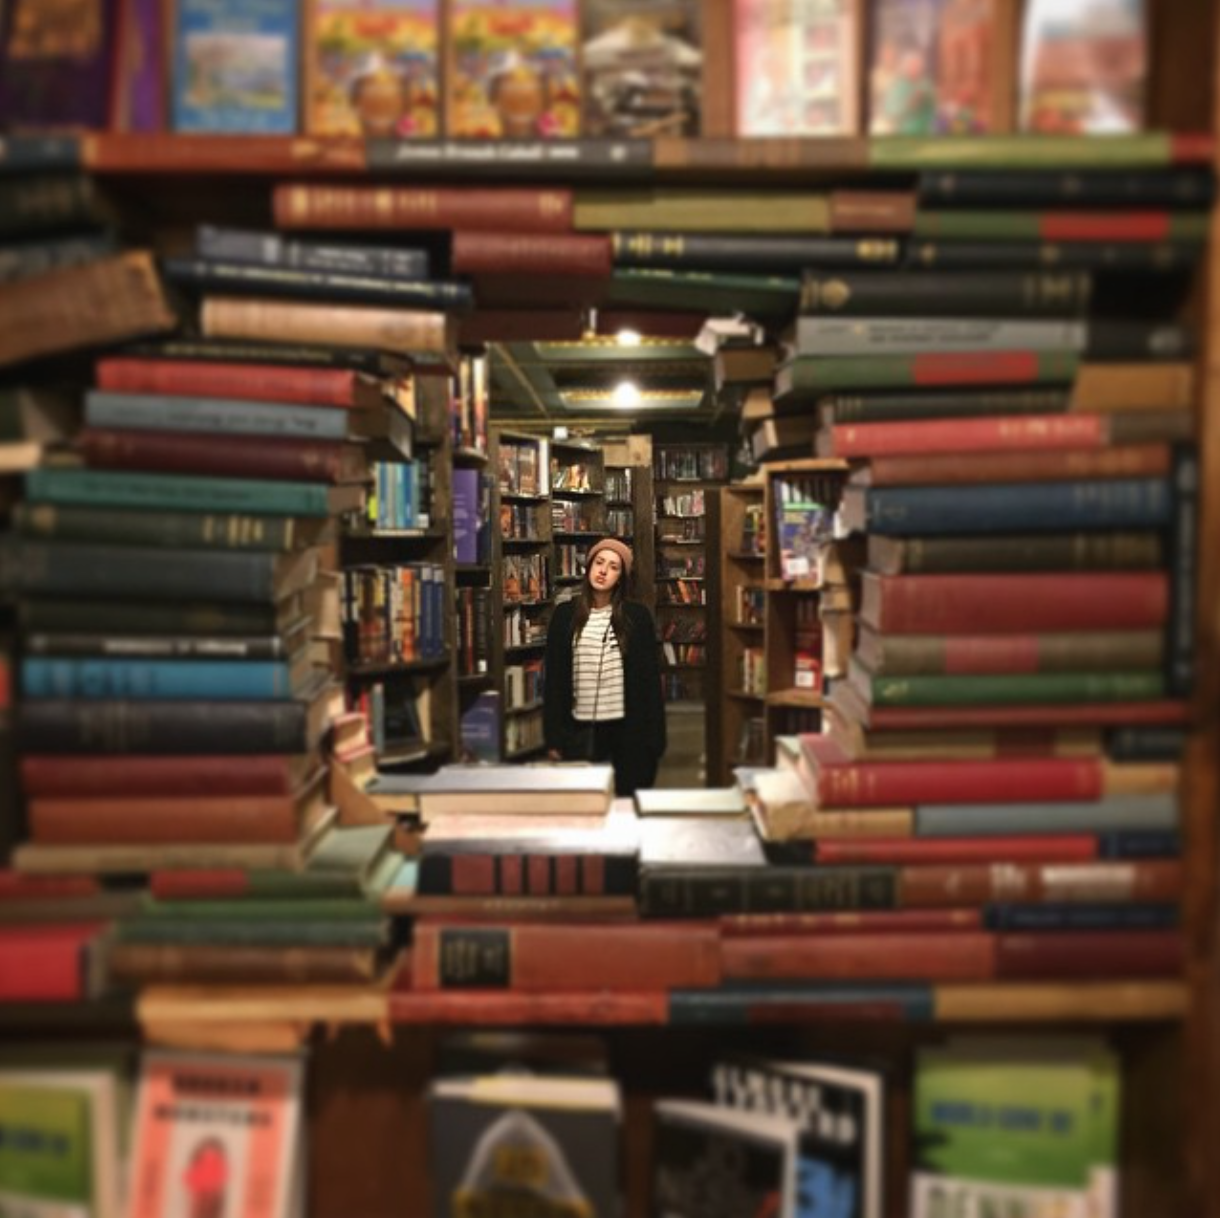 The Last Bookstore - Downtown, Los Angeles